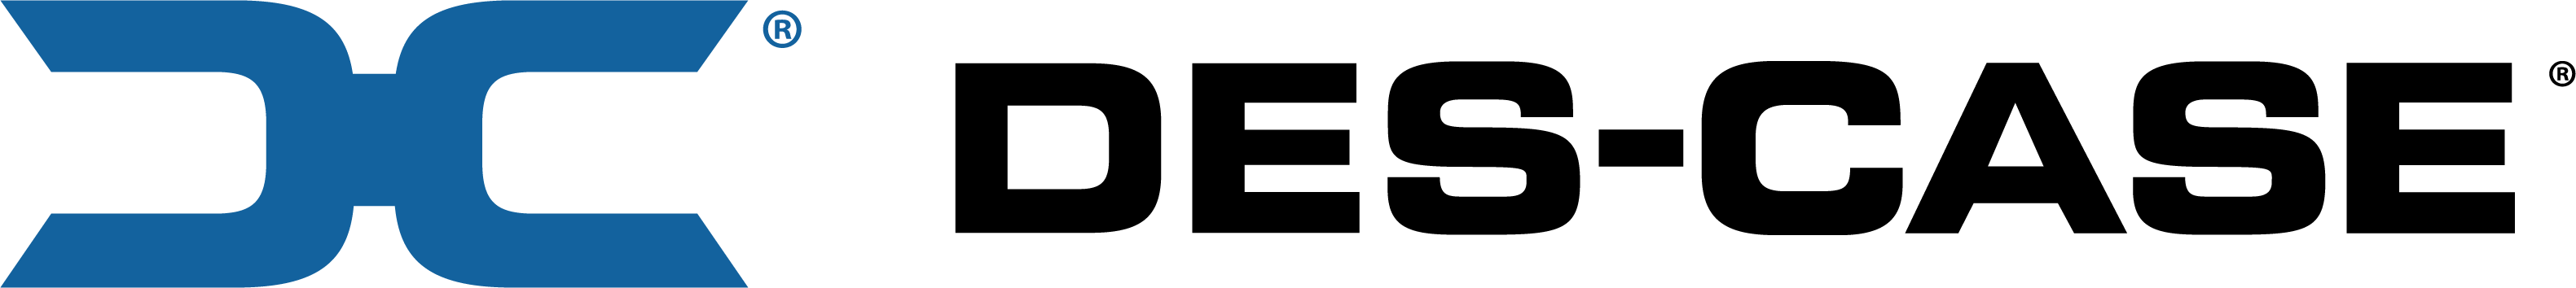 Des-Case Corporation